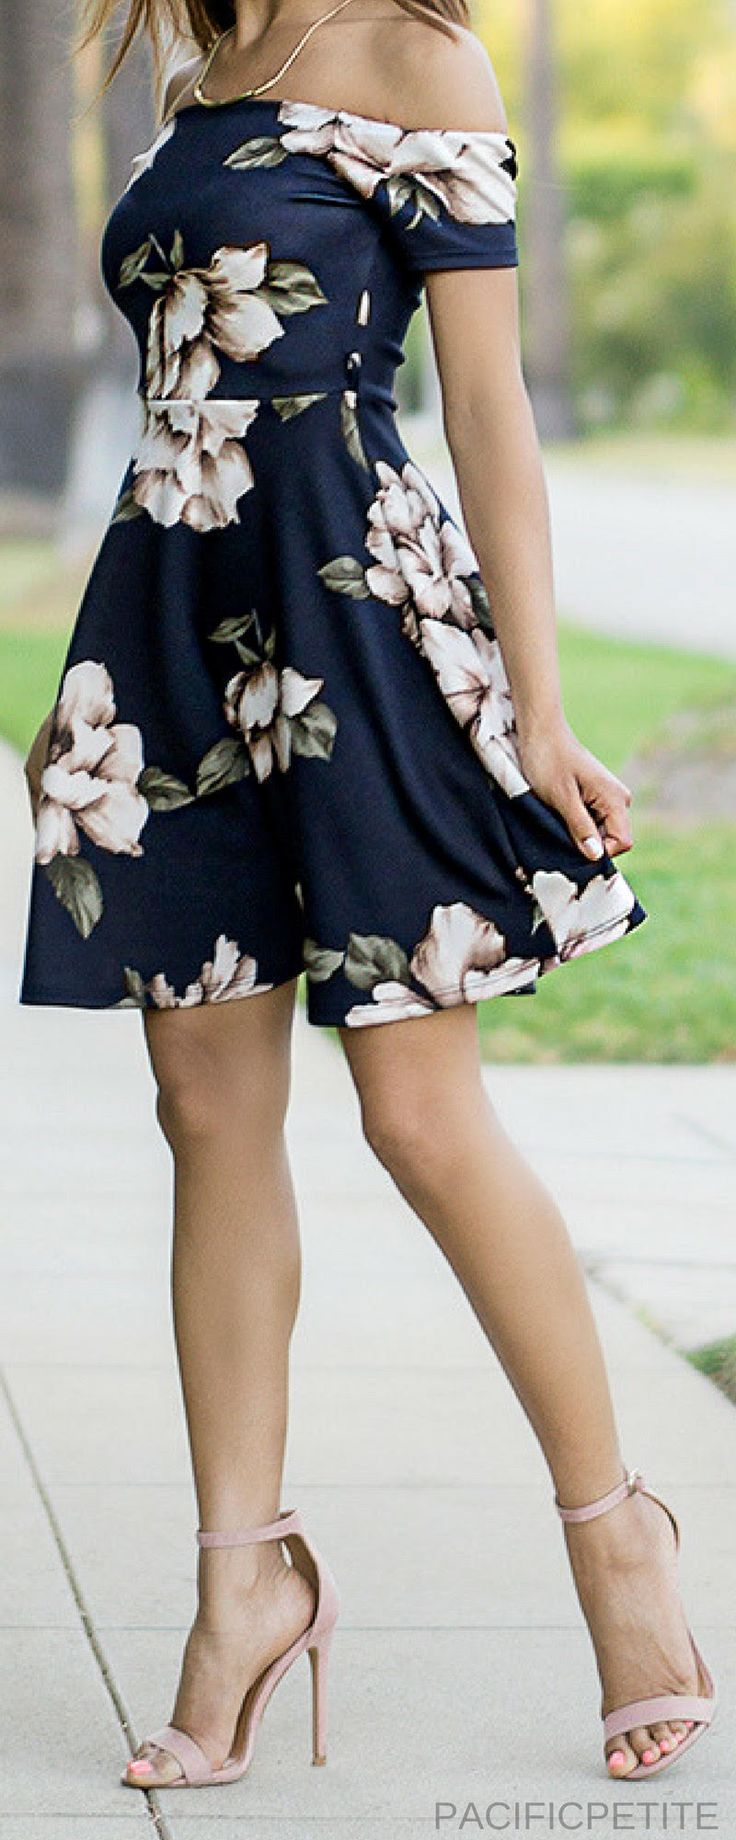 All Of The Sexy Teens That I See Are Wearing These Little Short